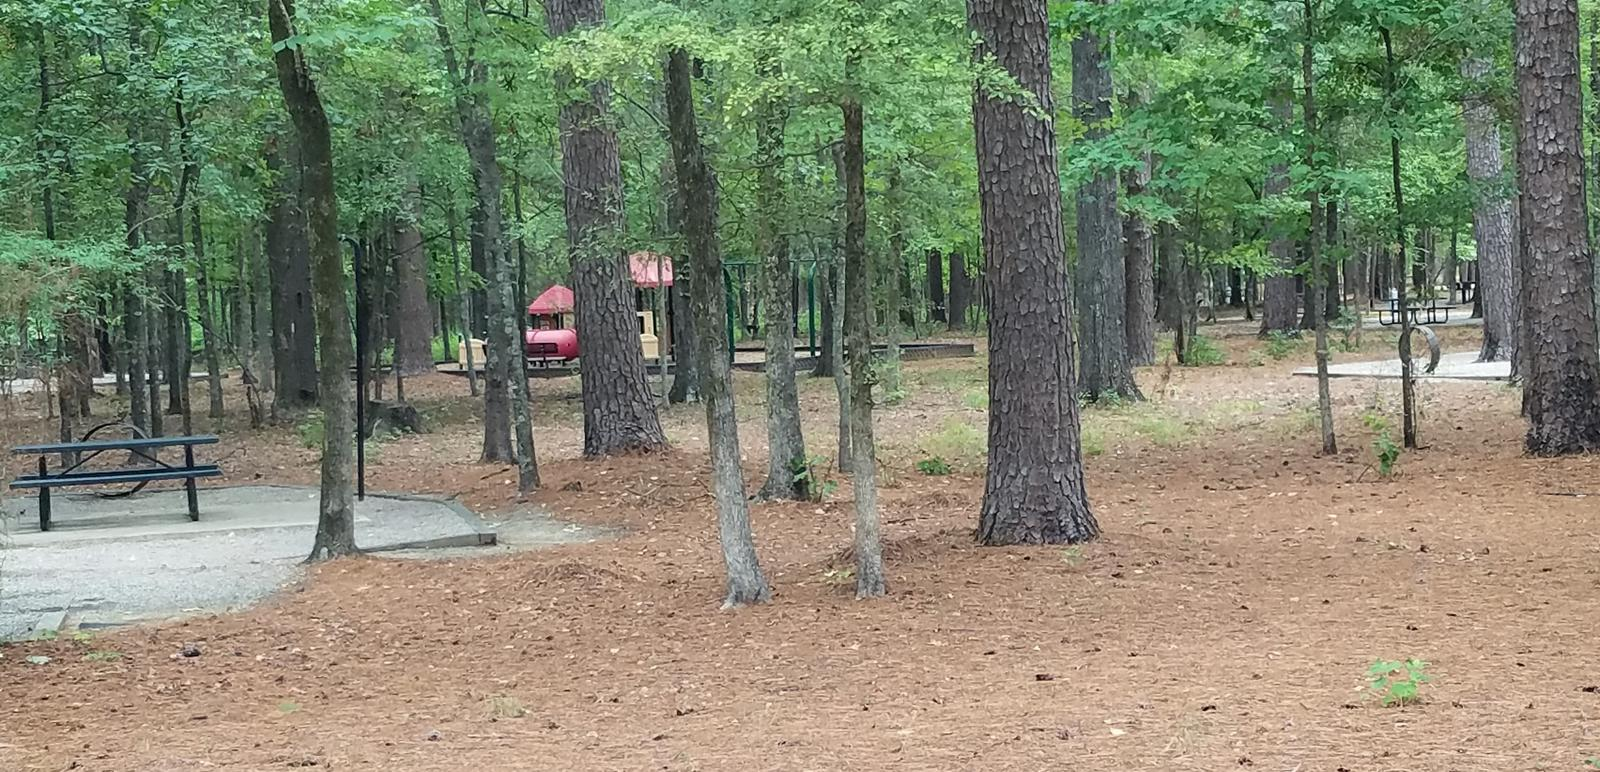 Campsite and playground in Malden Lake Campground.